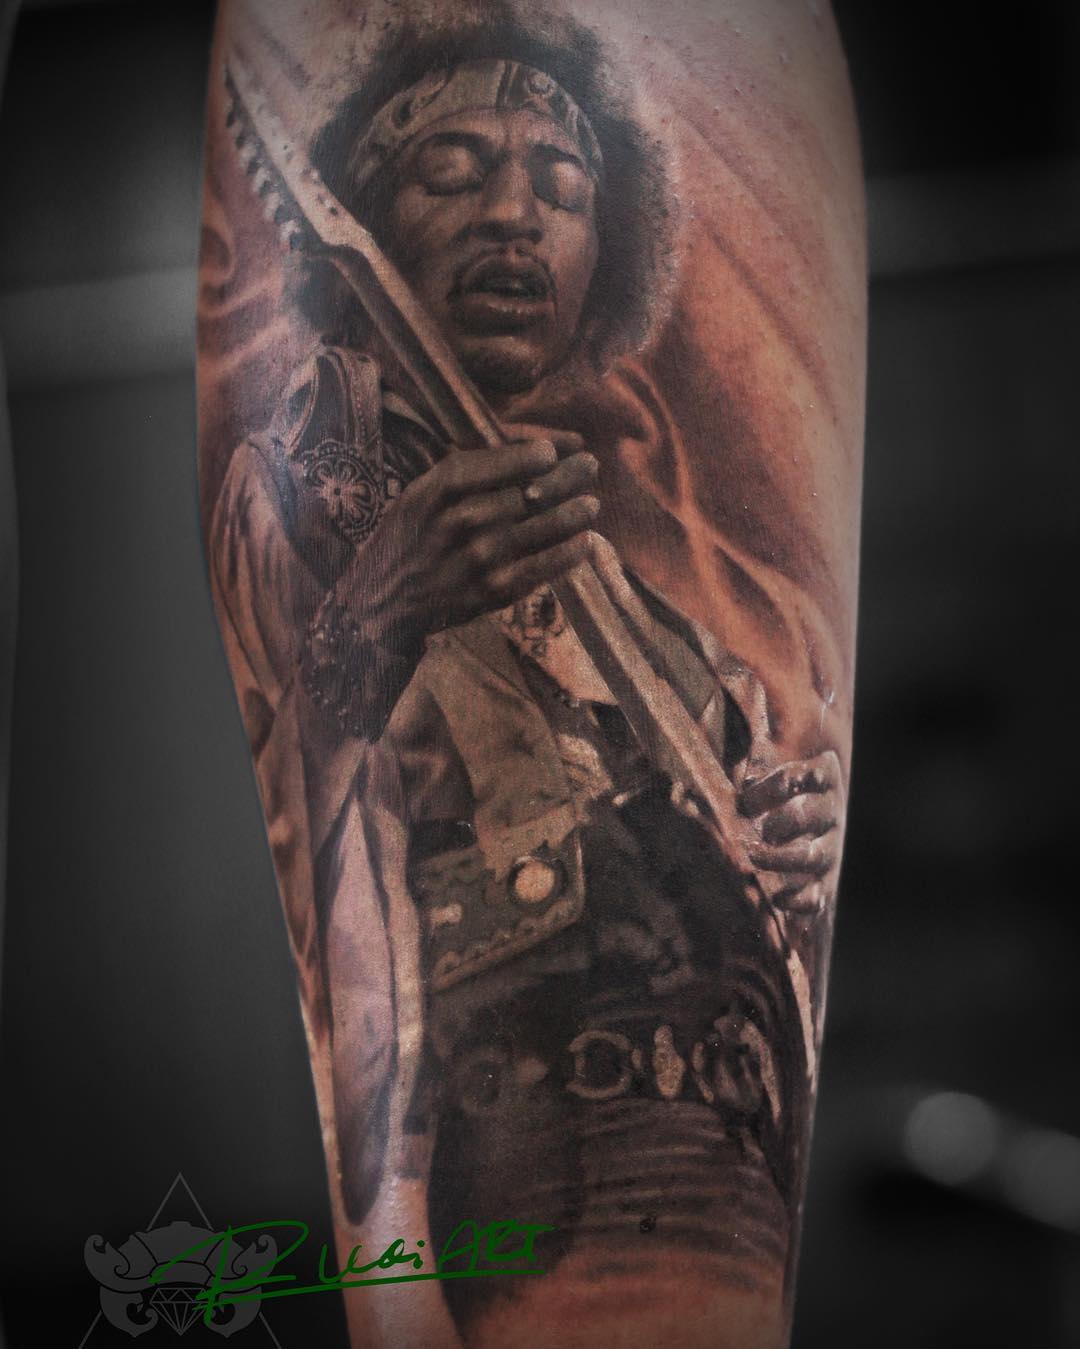 jesus good 2pac tattoos and more from portrait tattoo artists in bali tattlas bali tattoo guide. Black Bedroom Furniture Sets. Home Design Ideas